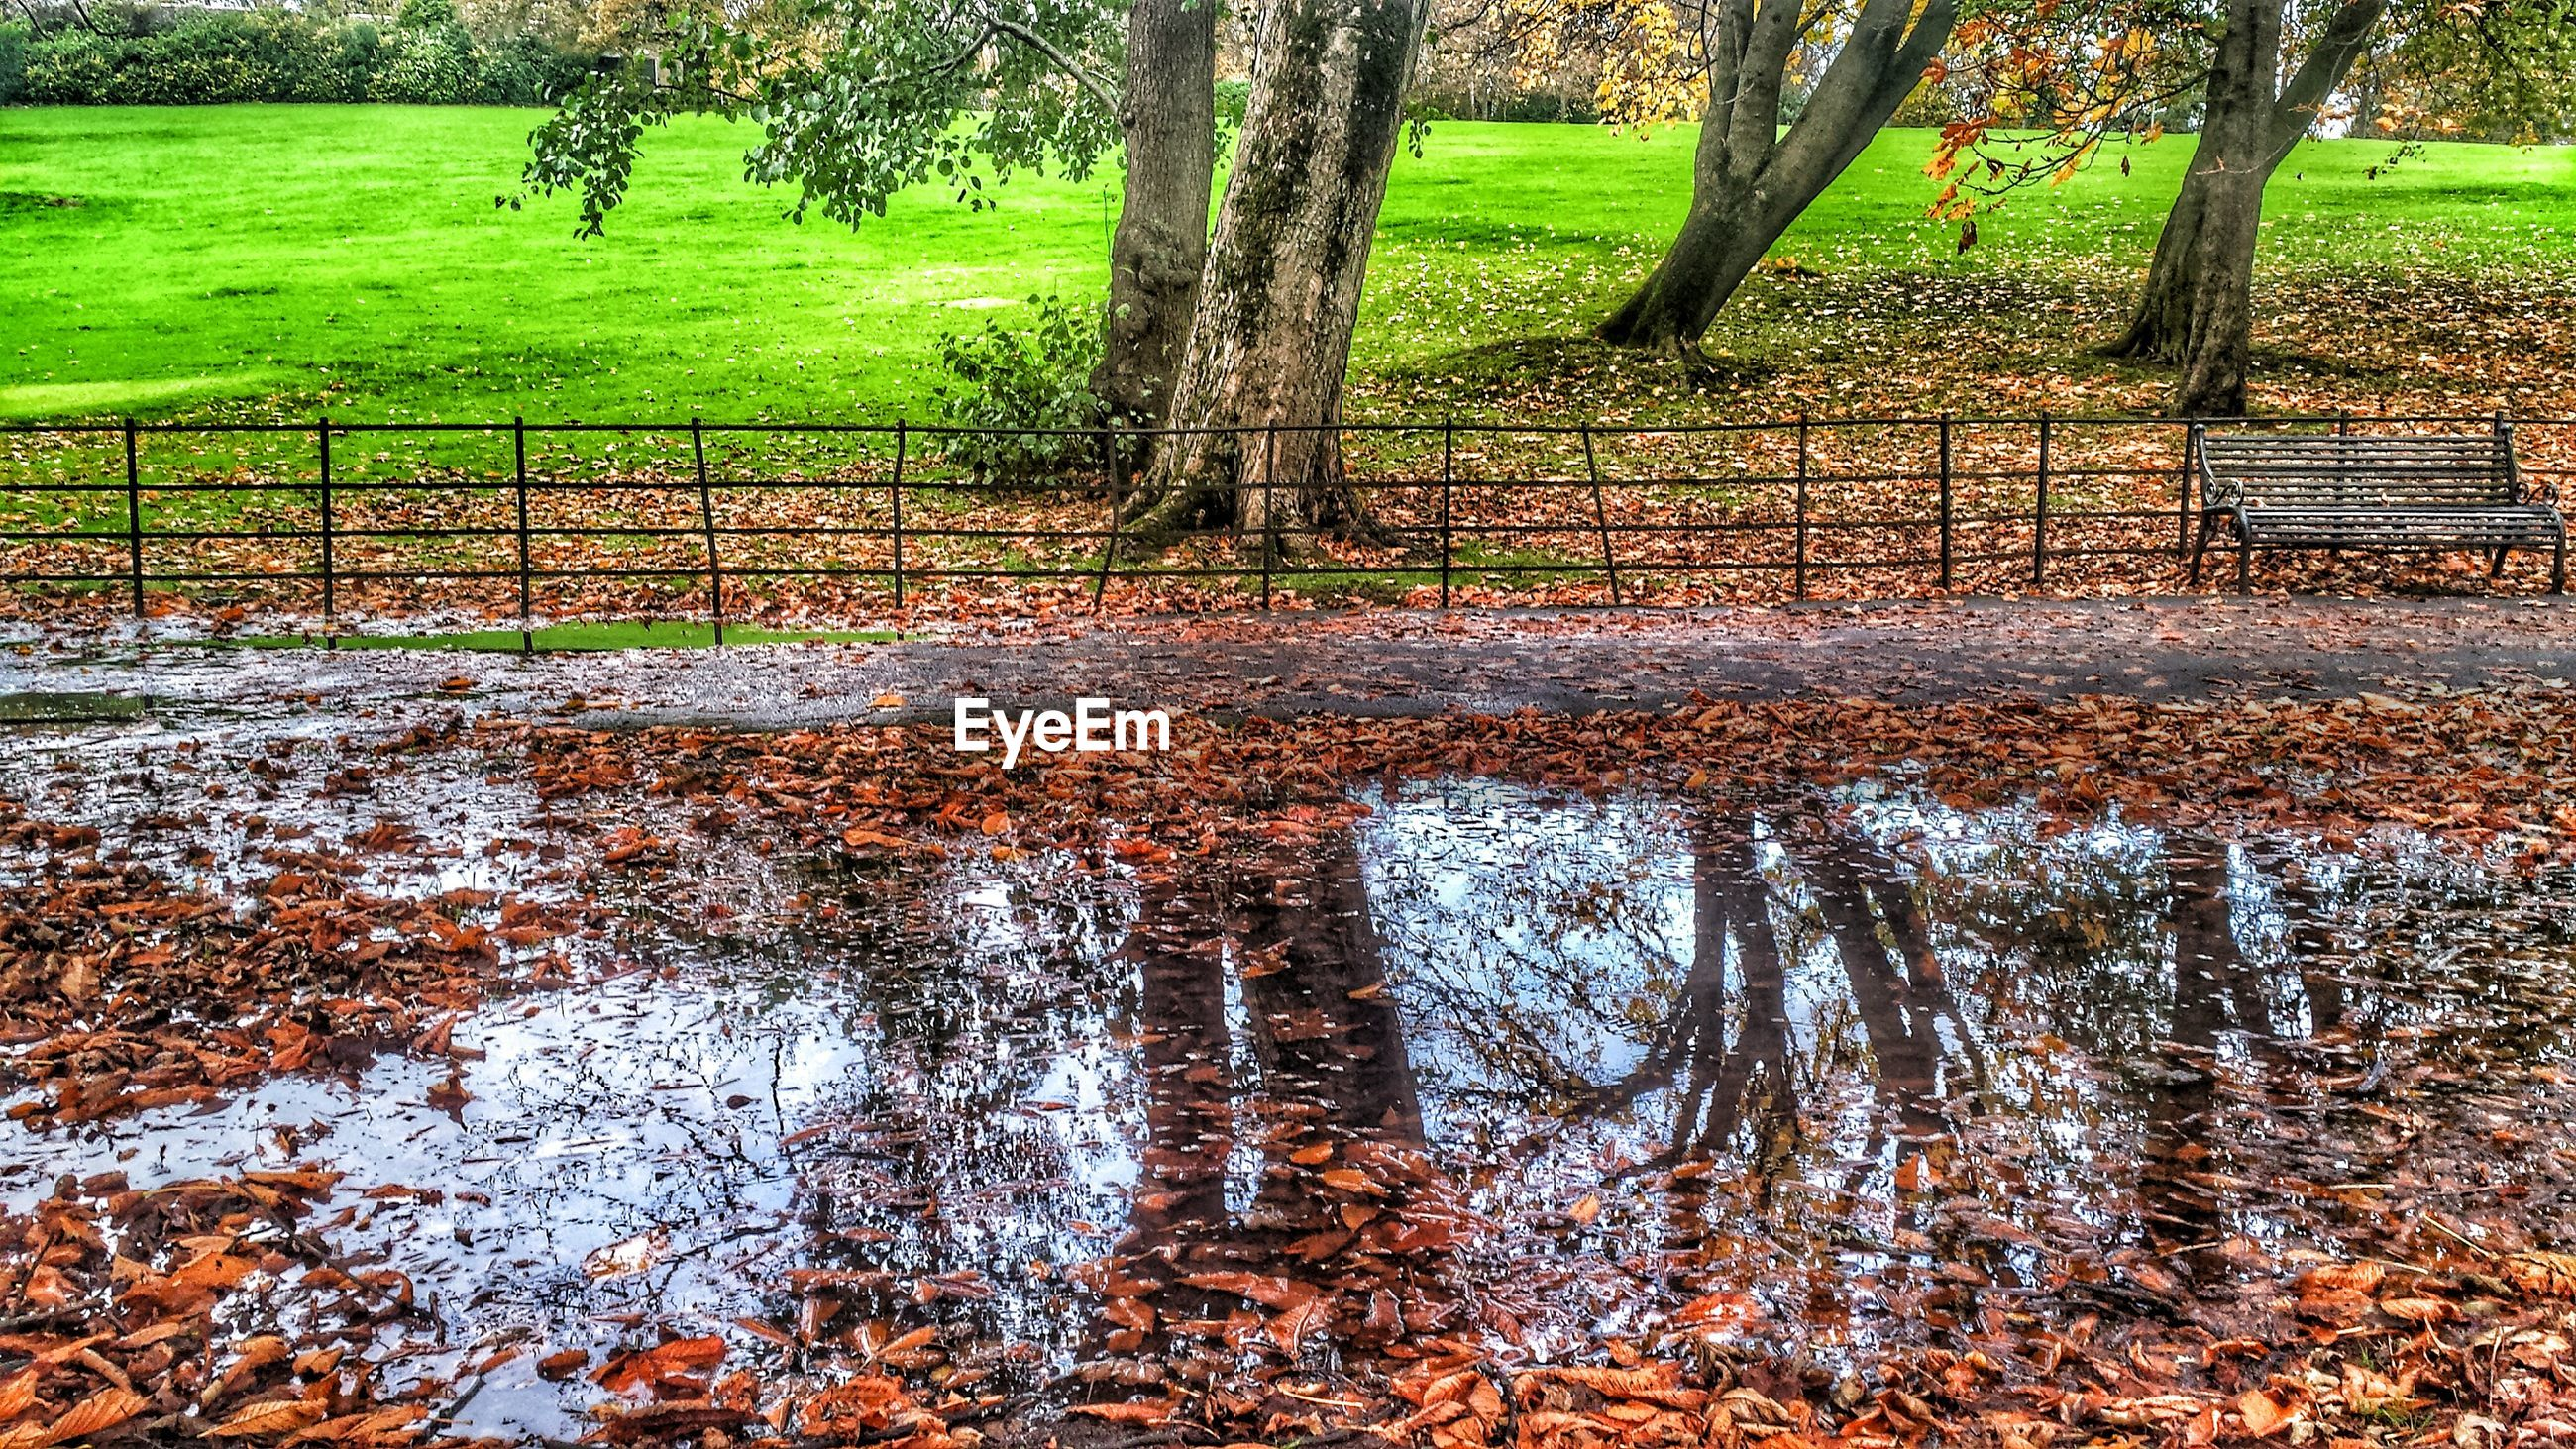 Puddle and falling leaves on road in park